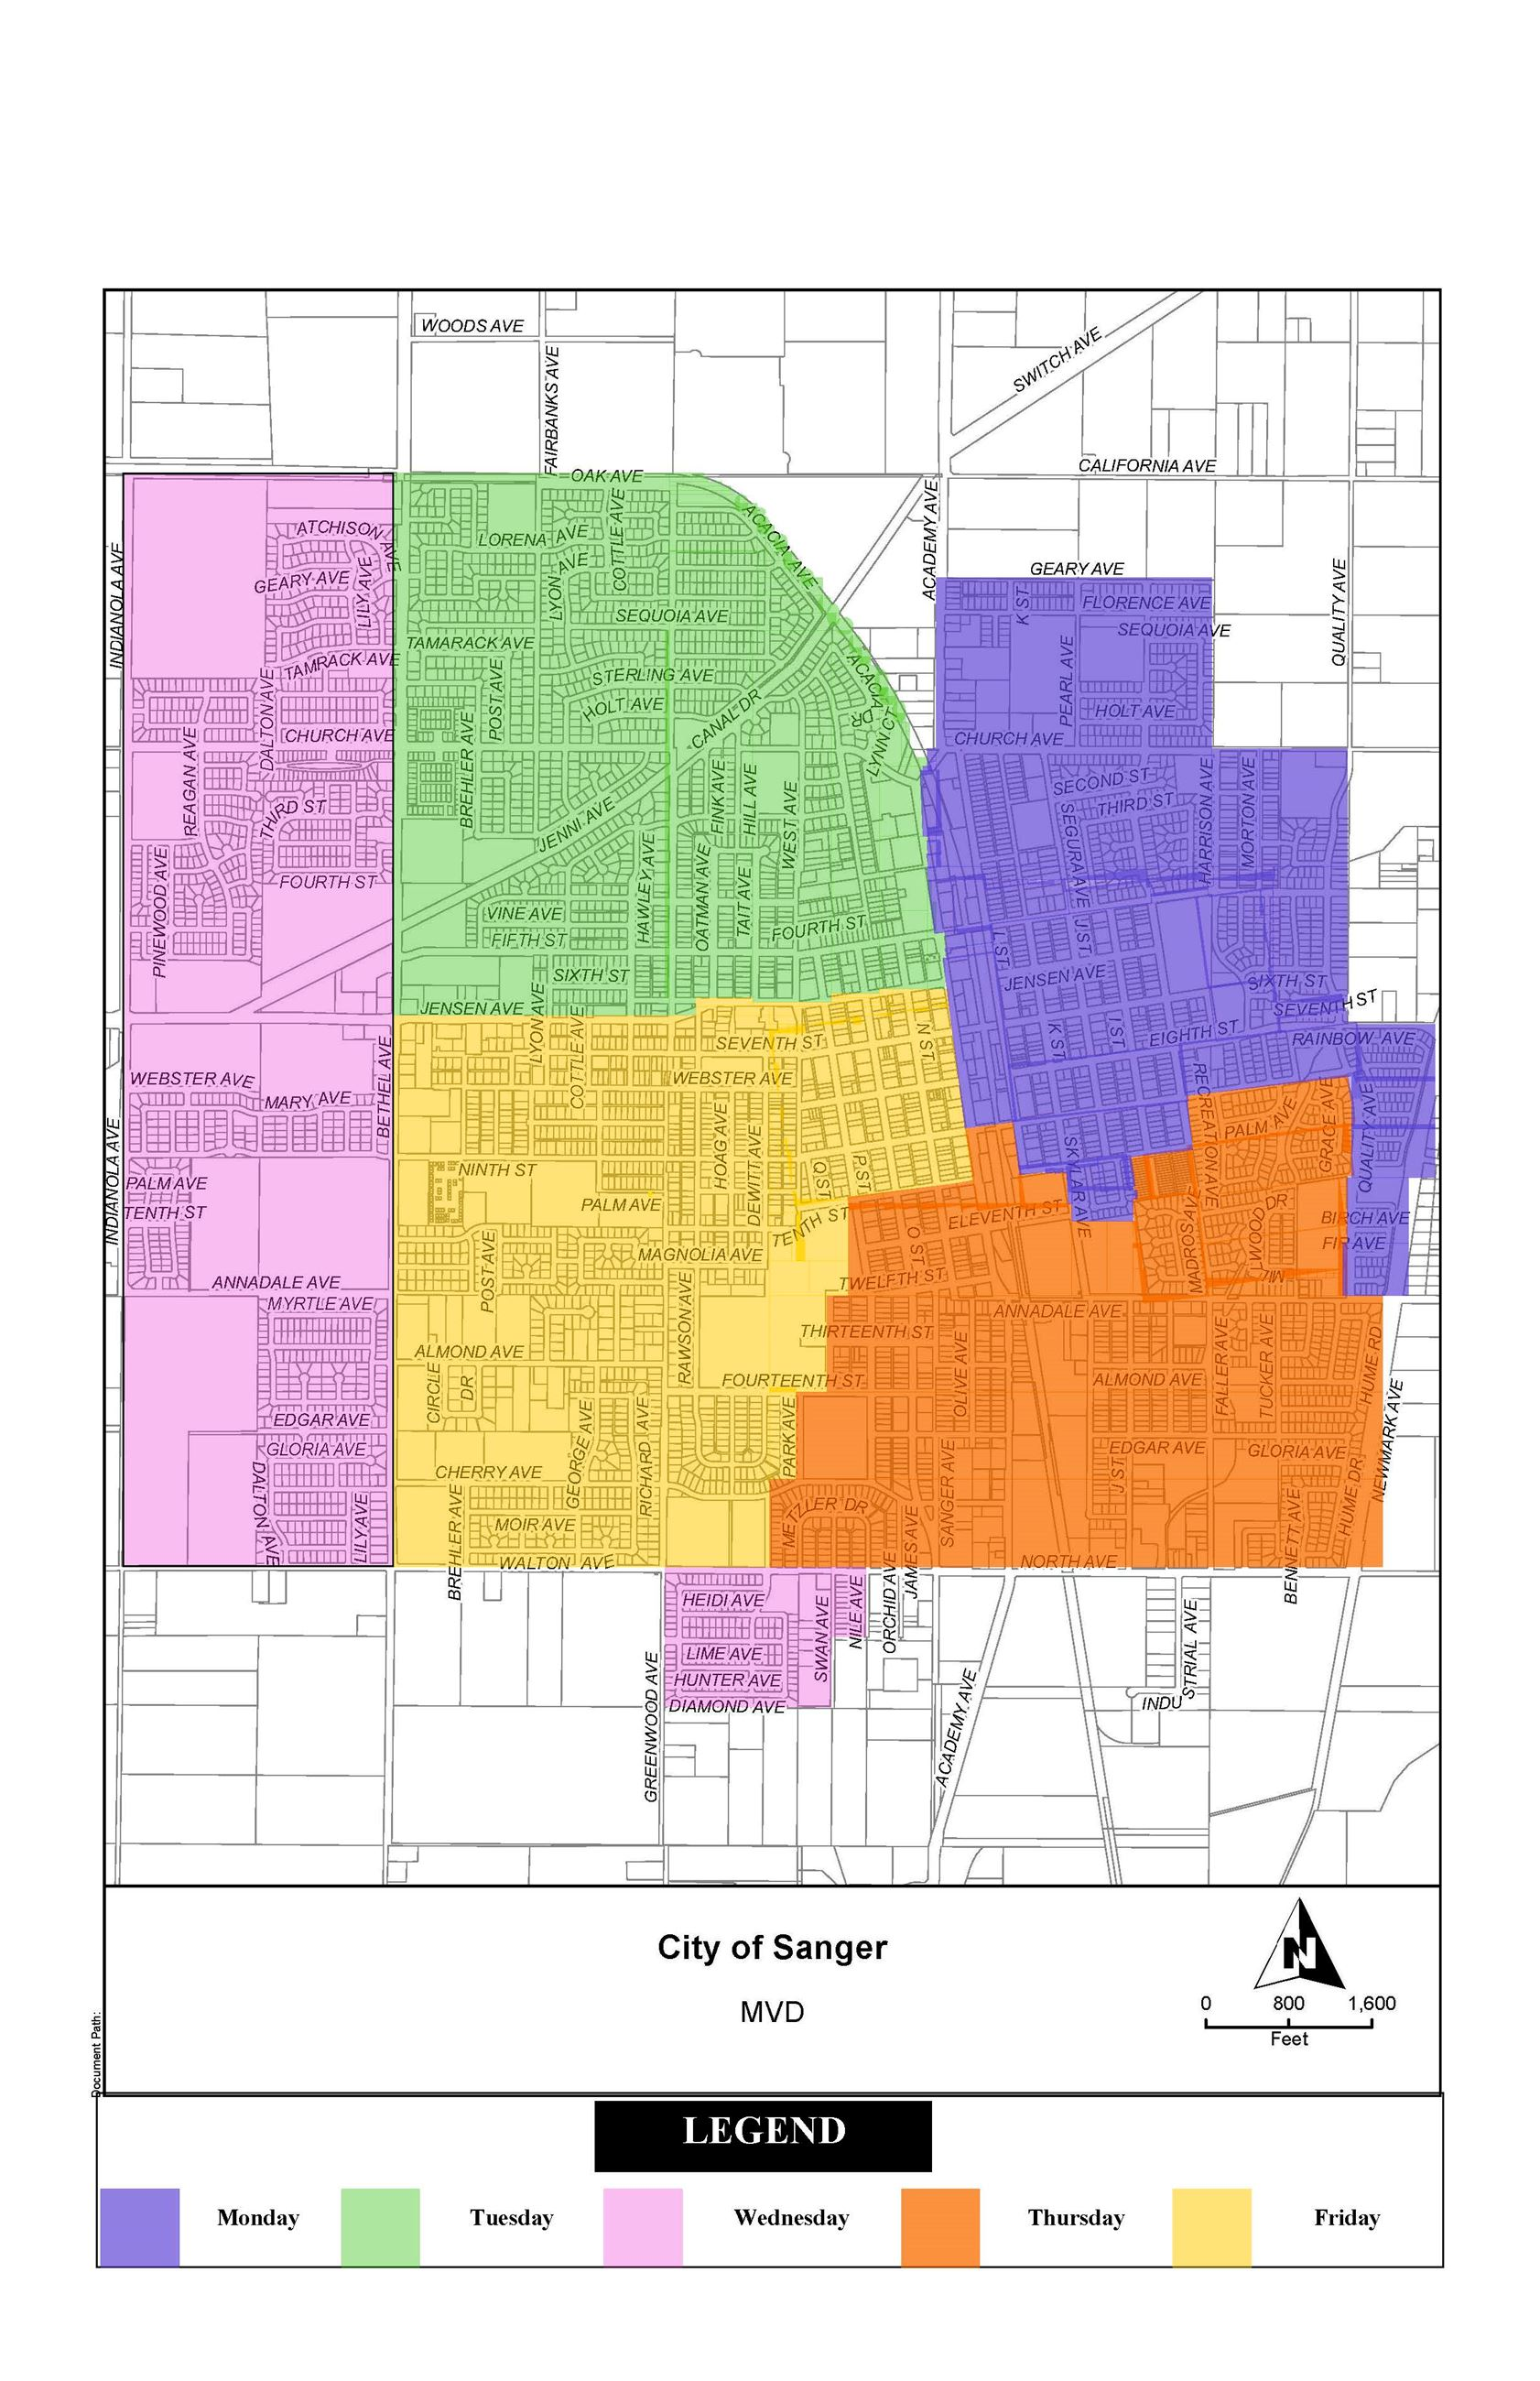 City of Sanger Garbage Collection Schedule Map - 2020